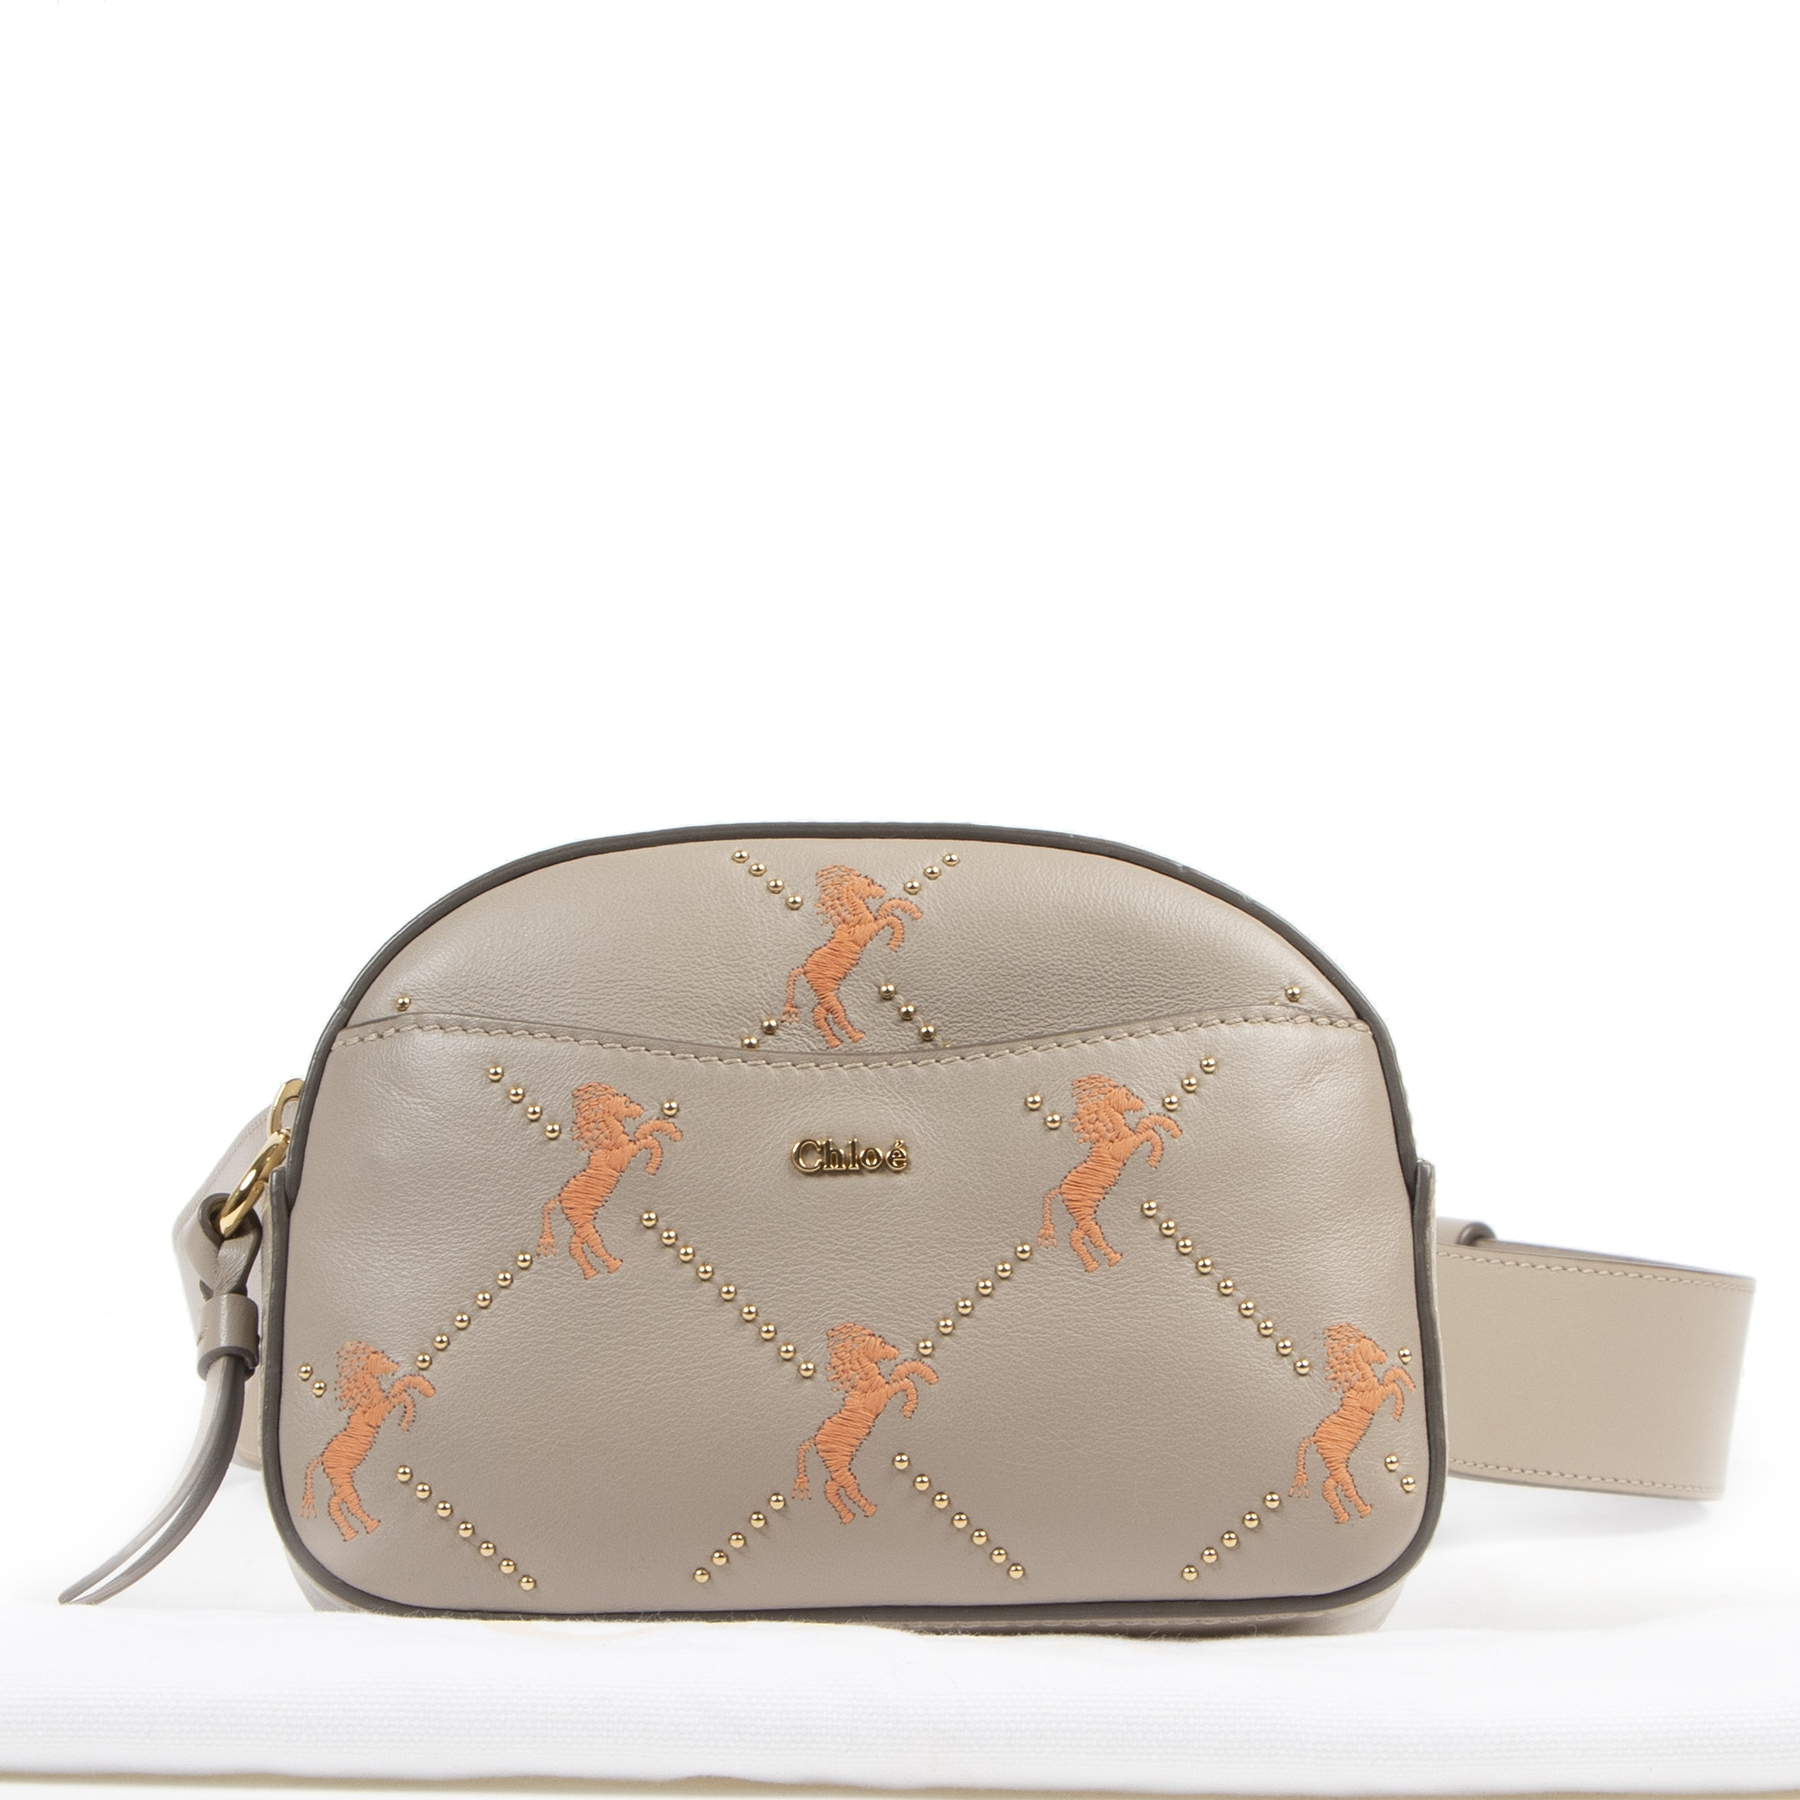 Chloé Embroidered Signature Belt Bag with Horses te koop bij Labellov tweedehands luxe in Antwerpen